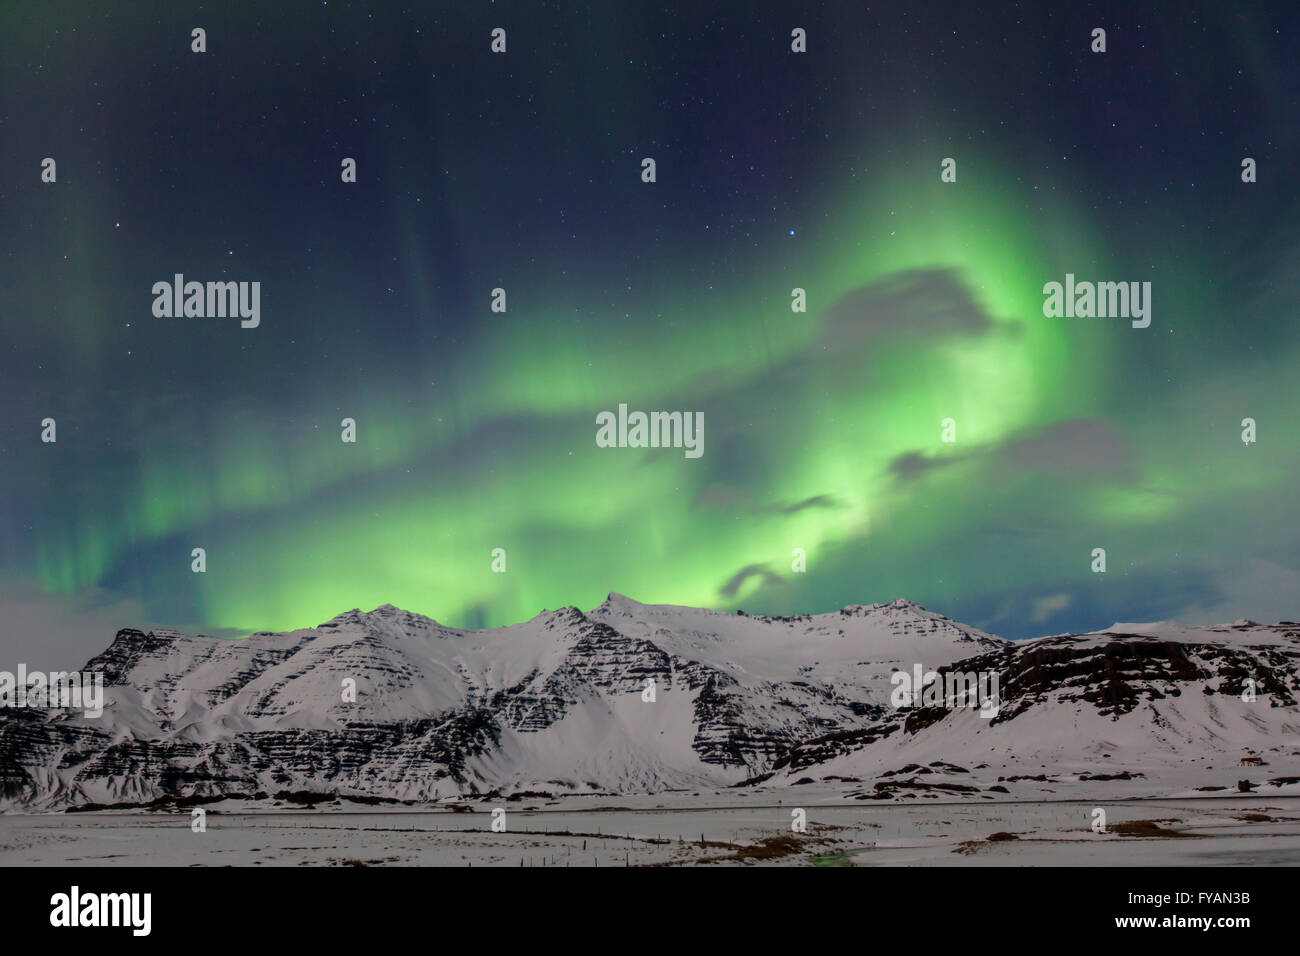 Northern Lights / Aurora borealis, weather phenomenon showing light display over the snow covered mountains in winter, - Stock Image